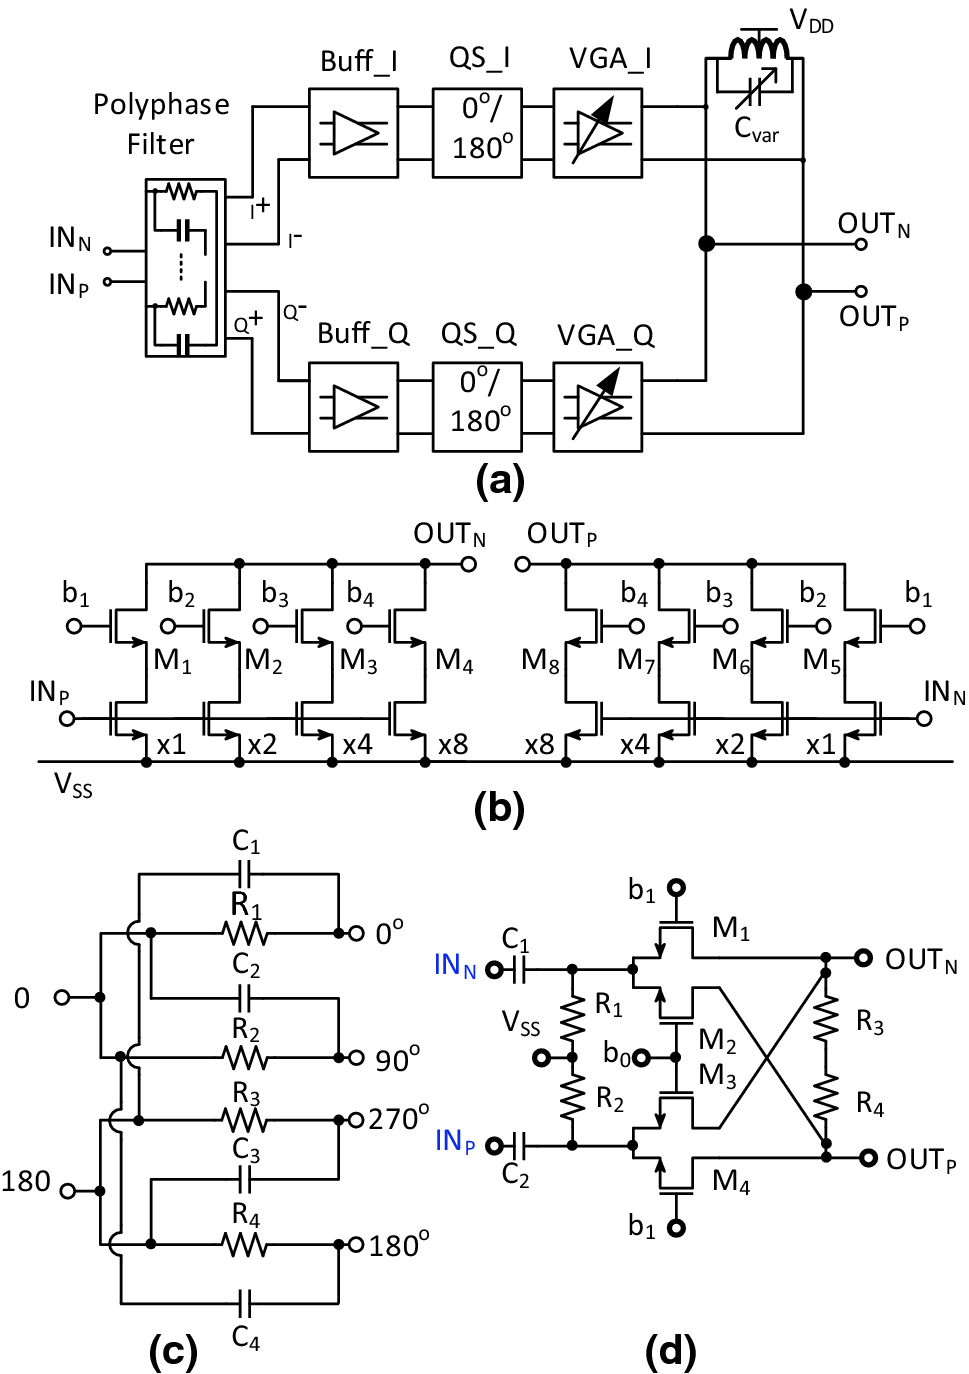 A Fully Integrated 4 2 Element Cmos Rf Phased Array Receiver For I Q Modulator Block Diagram Open Image In New Window